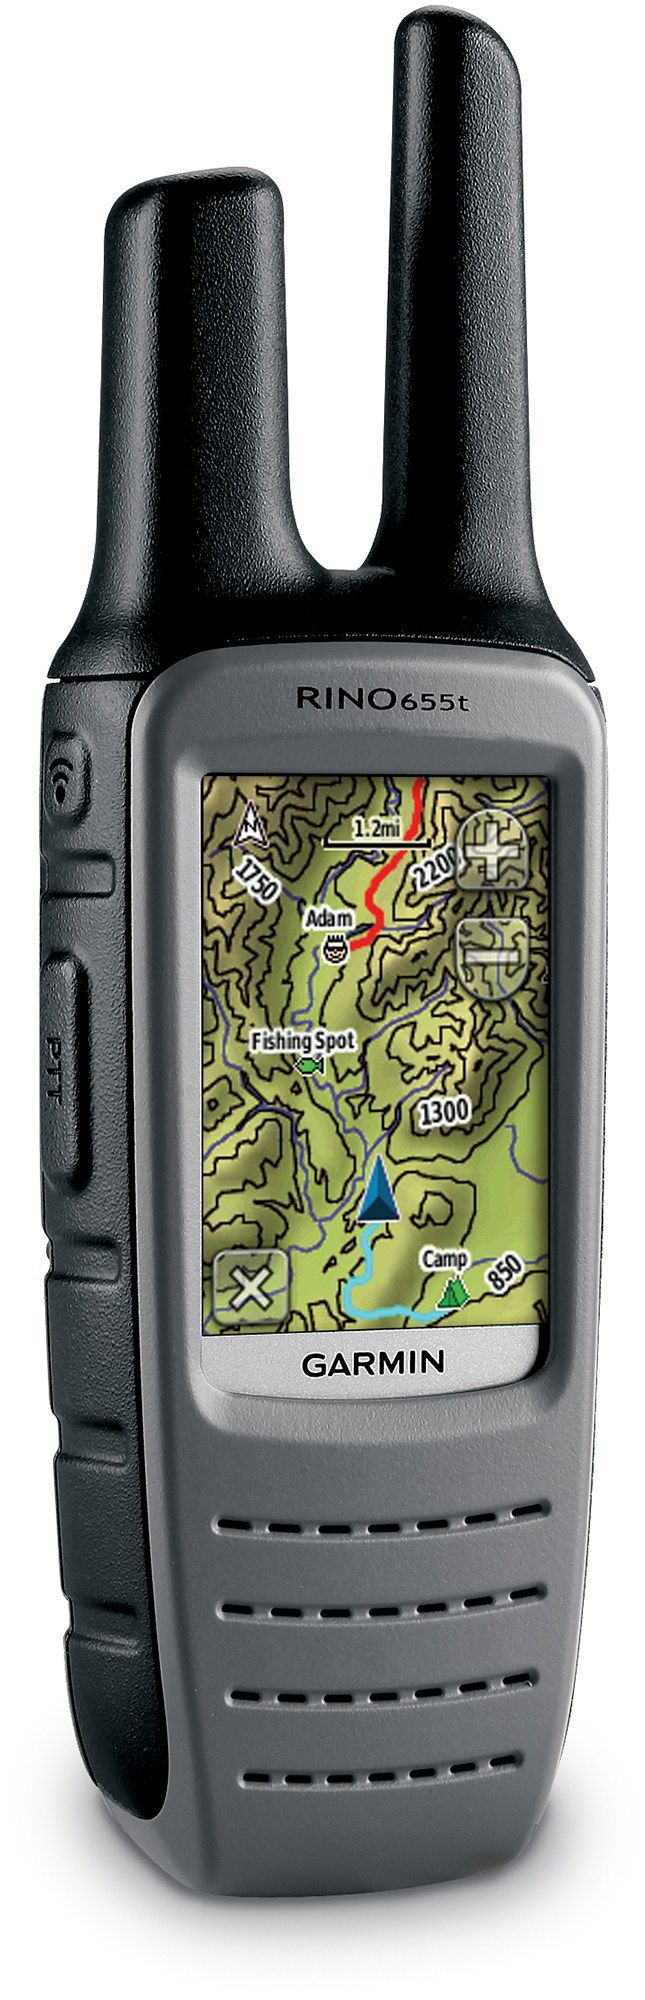 The Garmin Rino 655t GPS/2-way radio is a GPS with TOPO maps, FRS/GMRS radio, altimeter, compass, weather radio and digital camera. #REIGifts